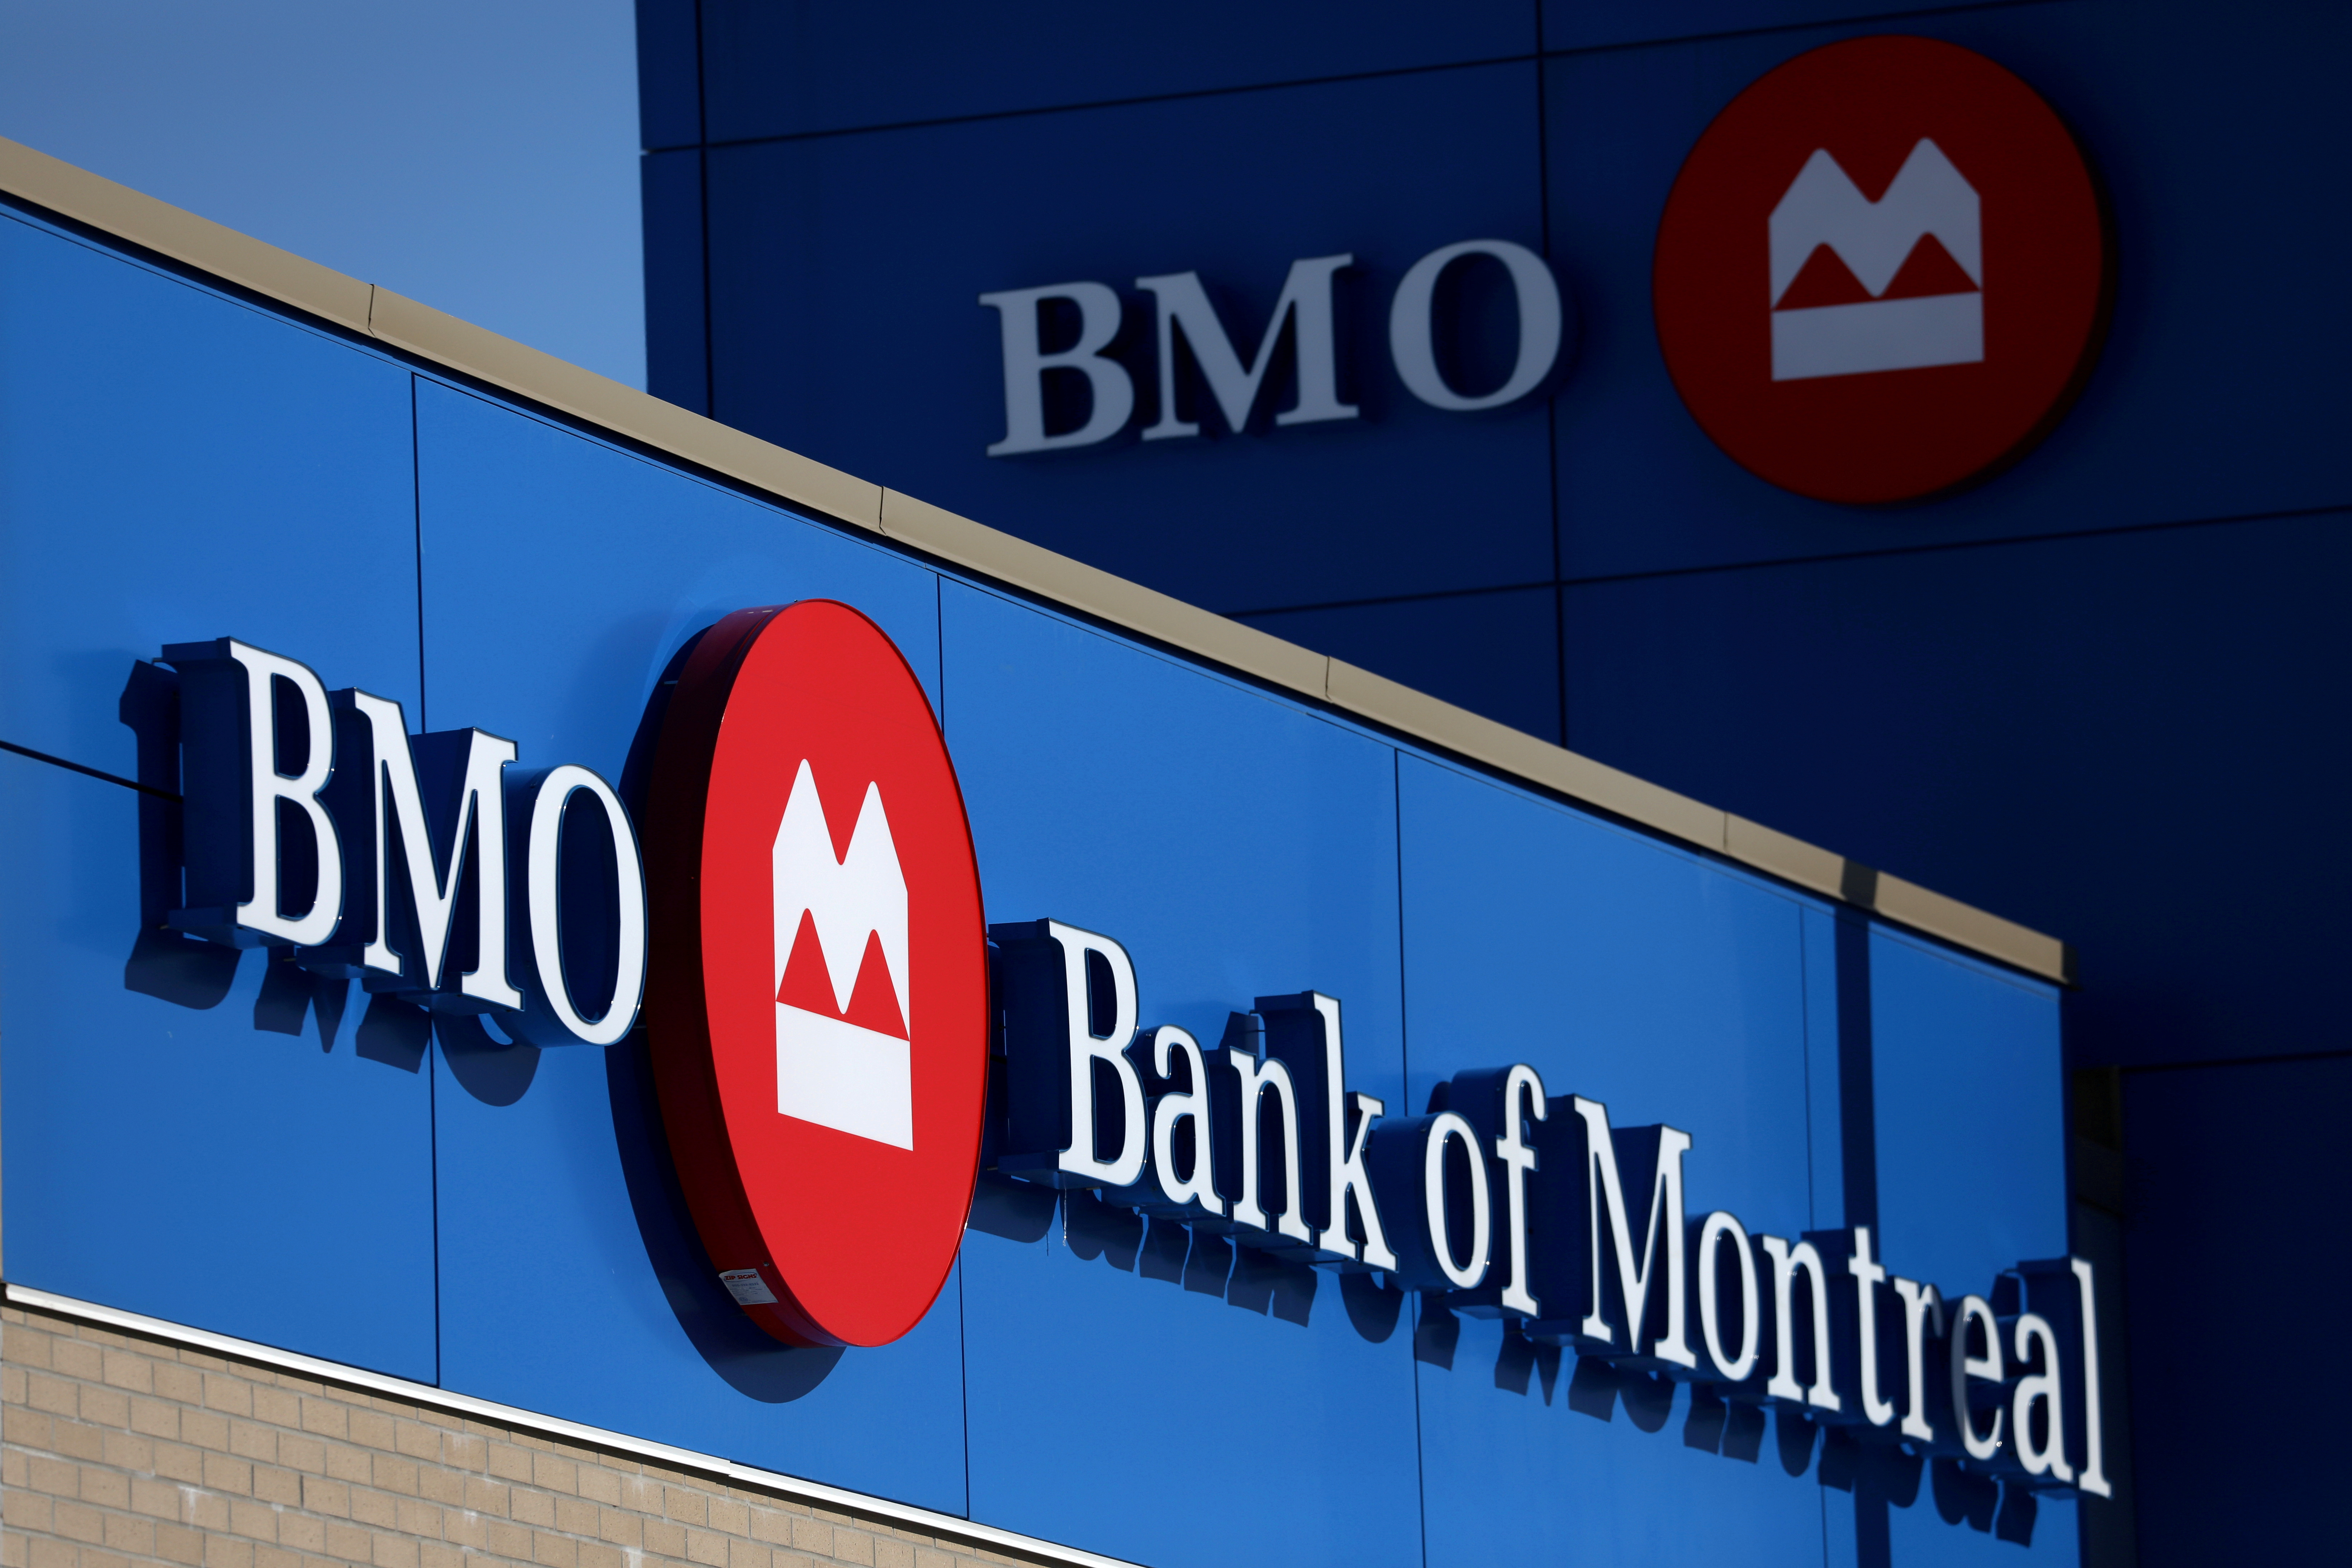 A Bank of Montreal (BMO) logo is seen outside of a branch in Ottawa, Ontario, Canada, February 14, 2019. REUTERS/Chris Wattie/File Photo